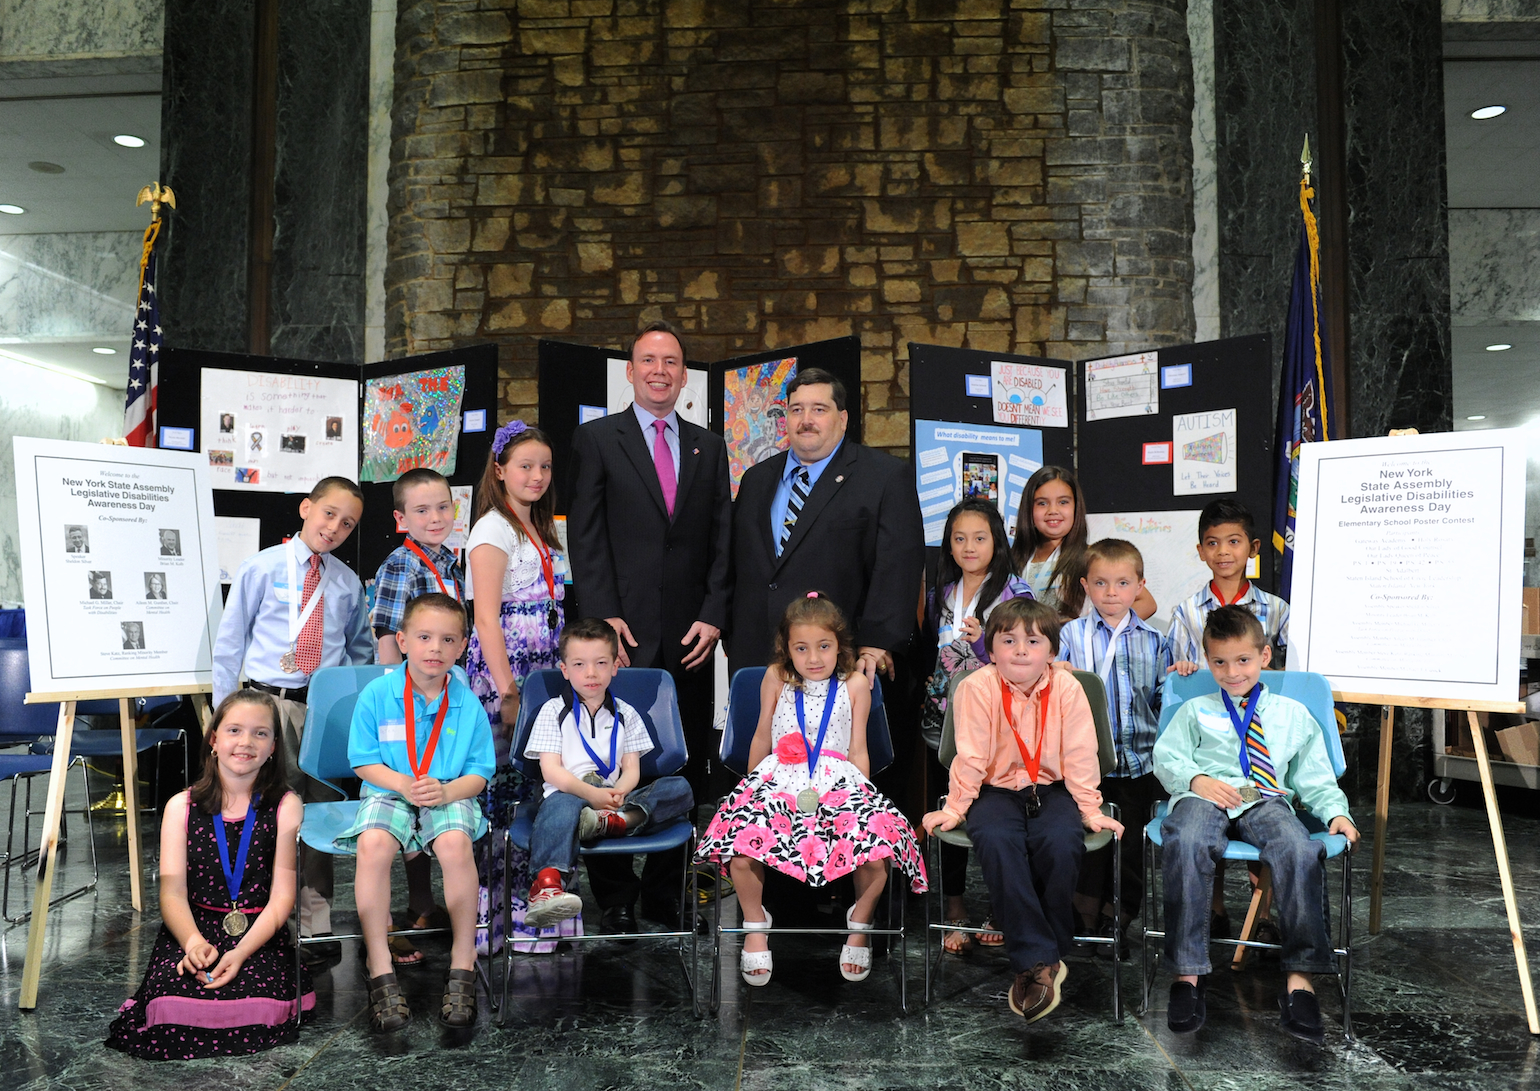 "Assemblyman Mike Cusick, former Chair of the Assembly Task Force on People with Disabilities along with Assemblyman Mike Miller, current Chair, pose with Staten Island students at the State Capital. The students won 1st, 2nd, and 3rd place in a poster contest sponsored by Assemblyman Cusick entitled ""What Disabilities Means to Me"" and were in Albany participating in the Assembly's Disability Awareness Day."